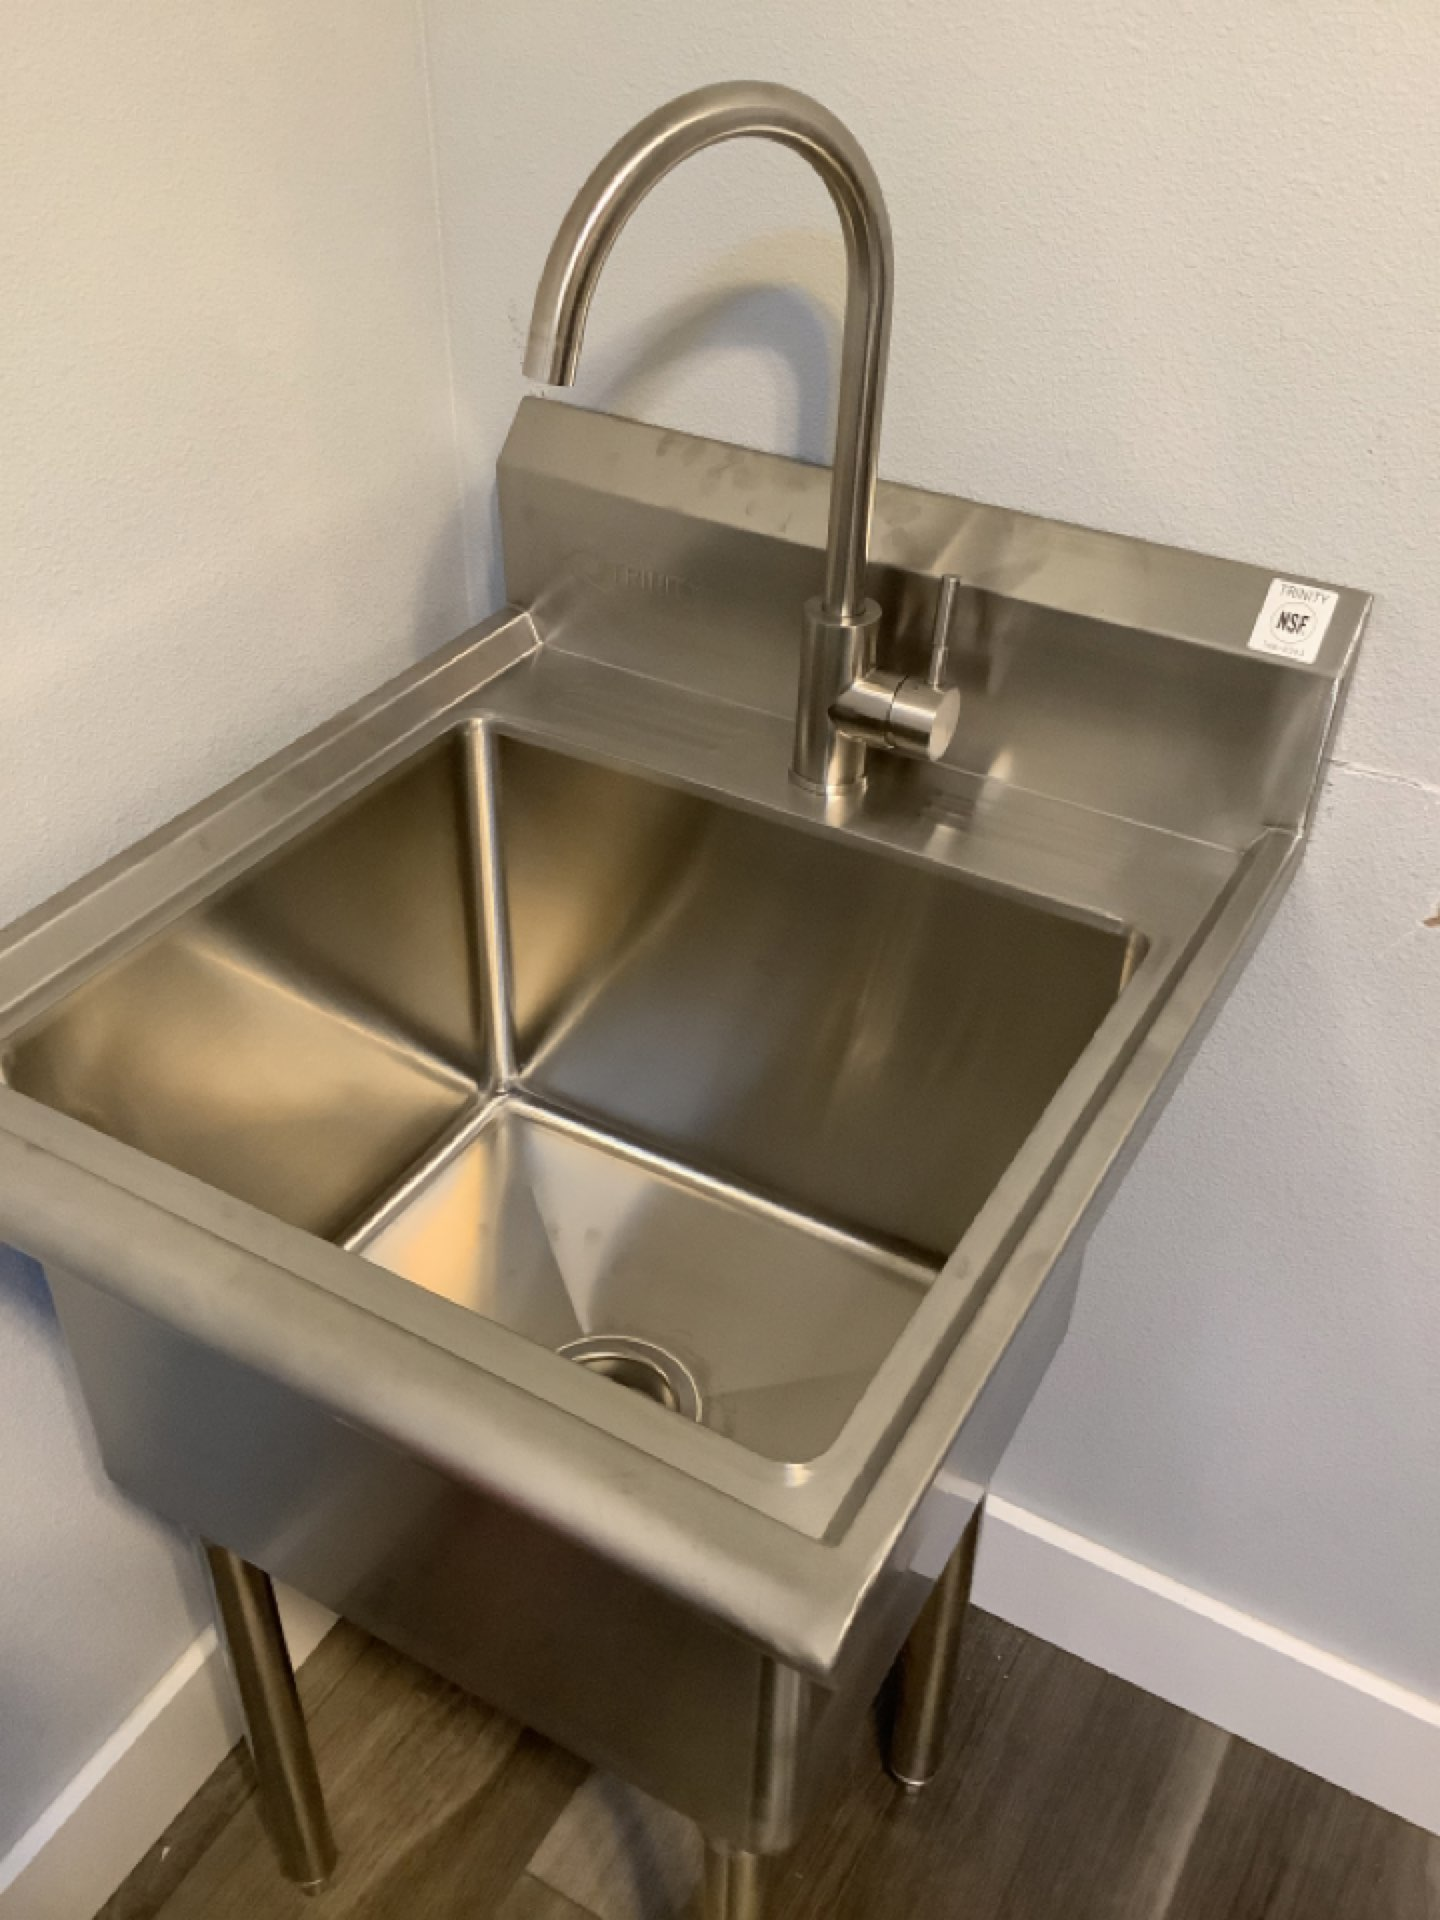 Prineville, OR - Installation of laundry sink and faucet. Installation of new kitchen sink faucet. Installation of lav sink and faucet. New drain and trap. Installation of shower heads and diverter for sprayer. Toilet lever repair.